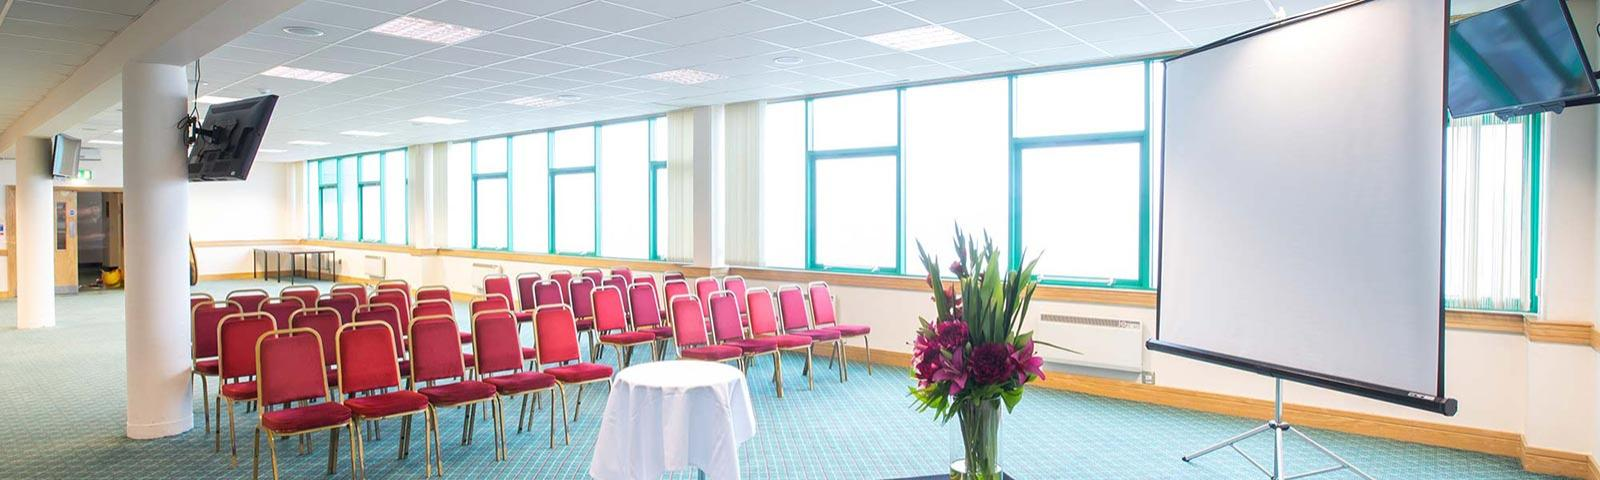 Prince Regent Suite at Brighton Racecourse set up ready for a presentation.